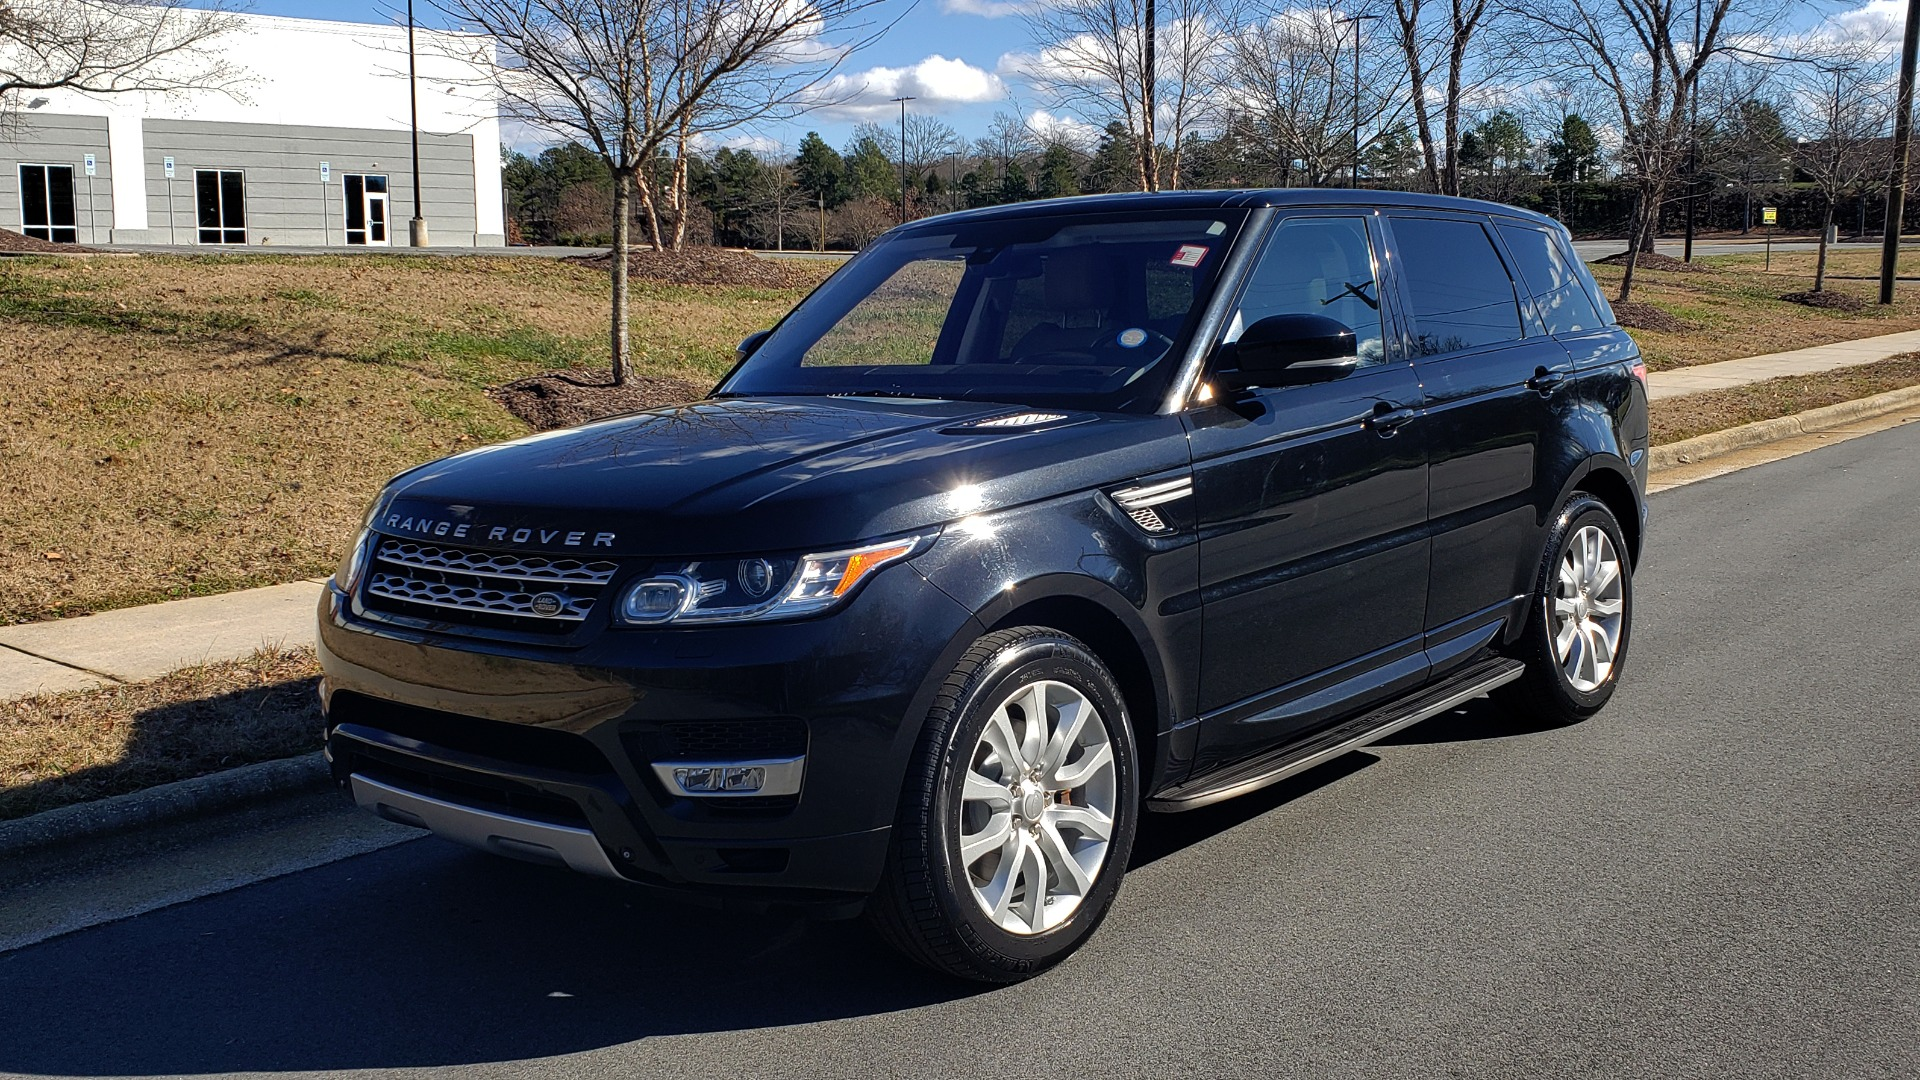 Used 2015 Land Rover RANGE ROVER HSE / 3.0L SC V6 / 8-SPD AUTO / NAV / PANO ROOF / REARVIEW for sale Sold at Formula Imports in Charlotte NC 28227 1